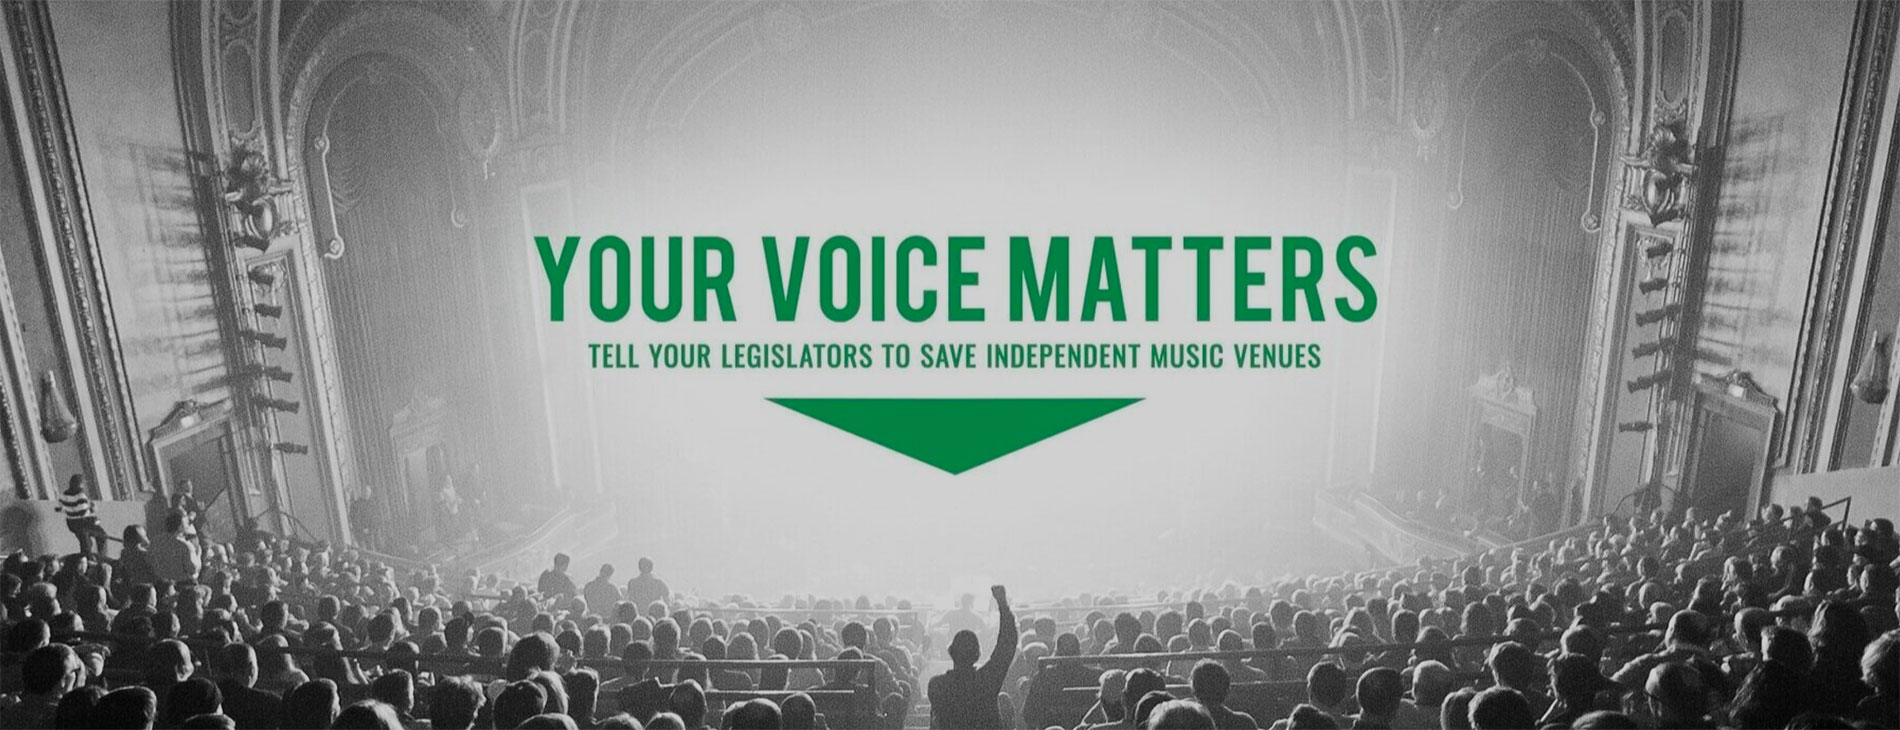 Your Voice Matters - Tell Your Legislators to Save Independent Music Venues